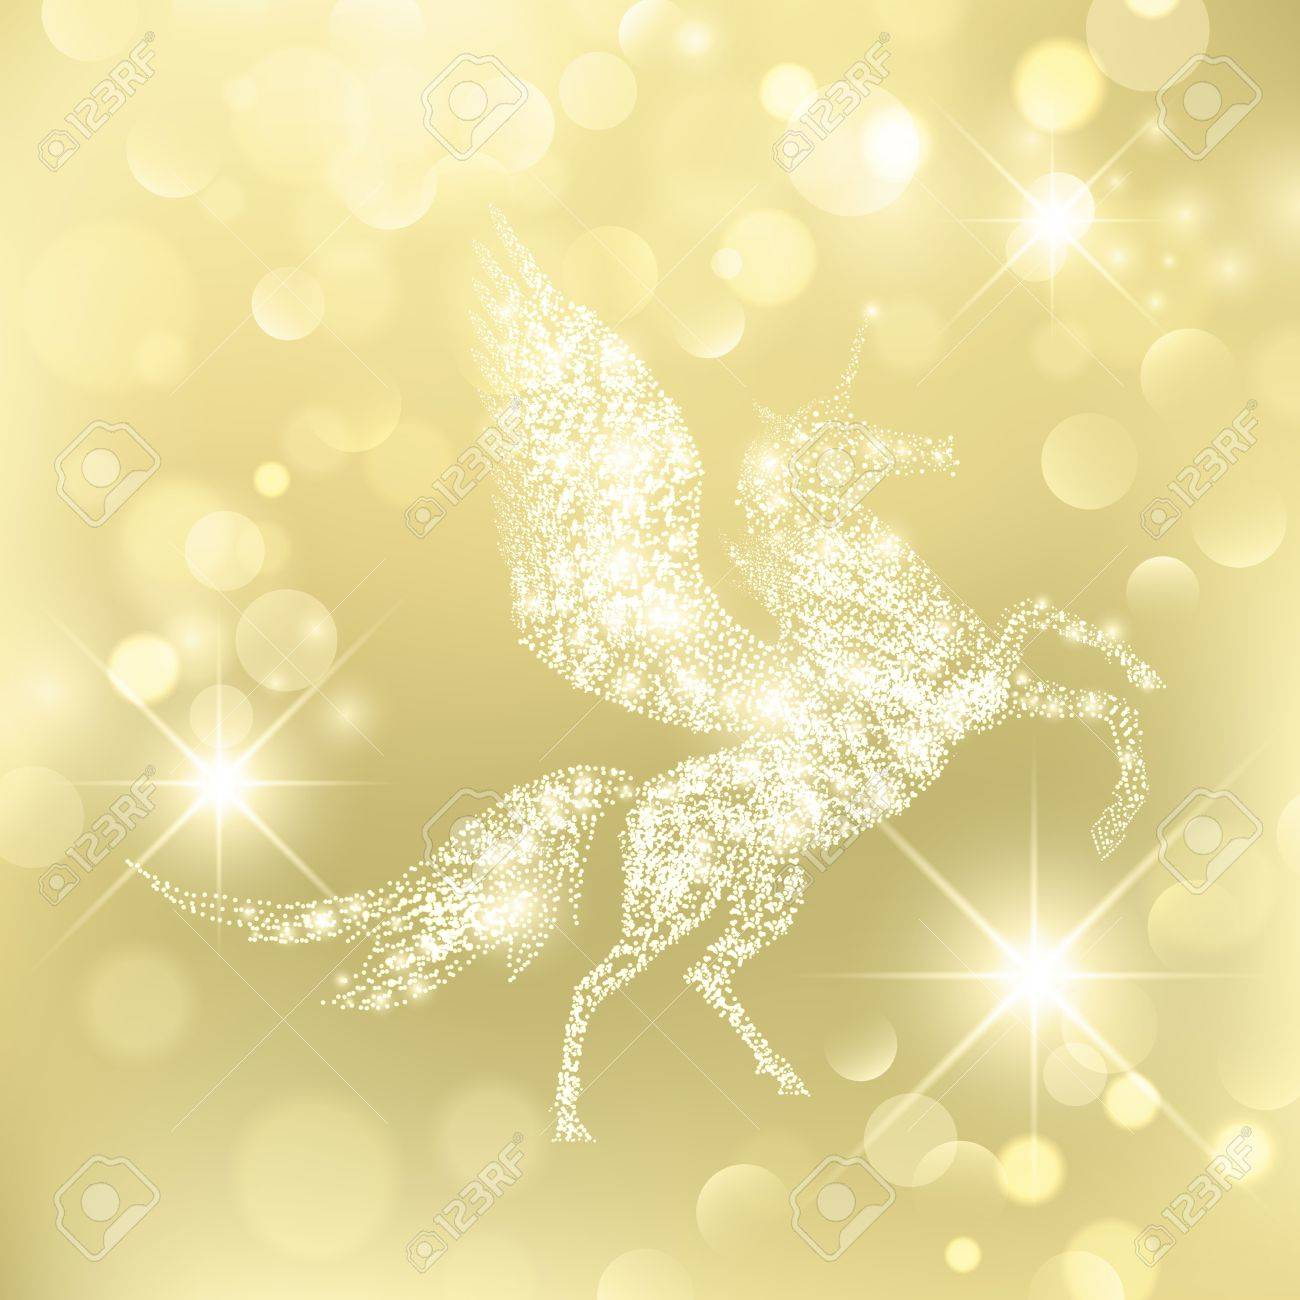 Magic Holiday Pegasus Which Grants Wishes over golden background